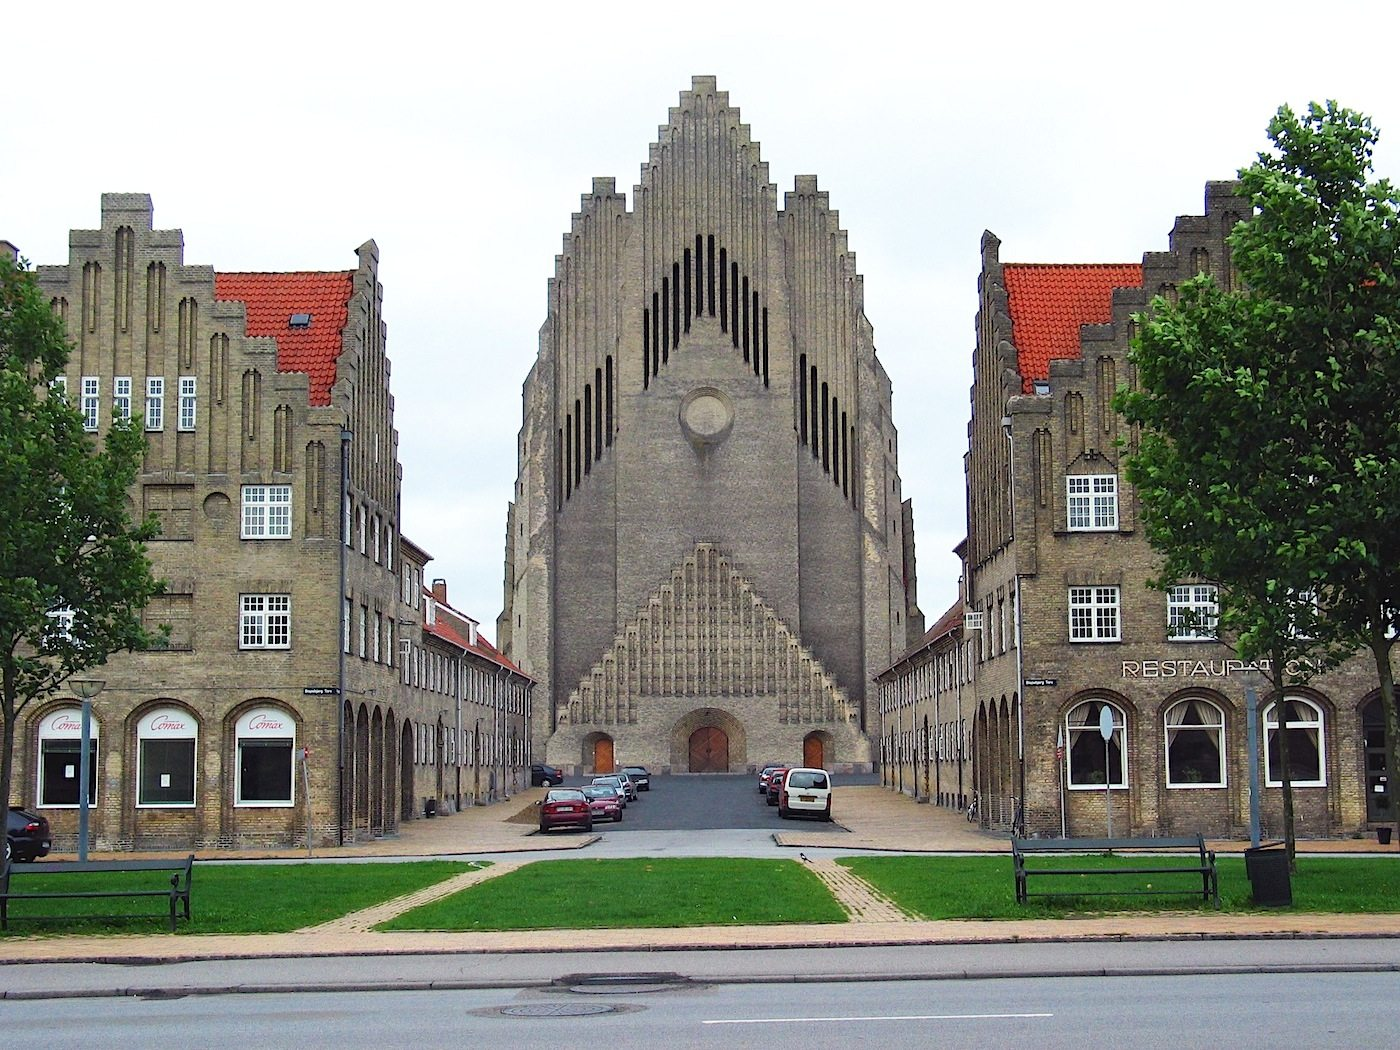 Grundtvig's Church. In Copenhagen, Denmark, seen from the west. The church was completed in 1940. Planned by Peder Vilhelm Jensen-Klint, who merged the modern geometric forms of Brick Expressionism with the classical vertical of Gothic architecture.